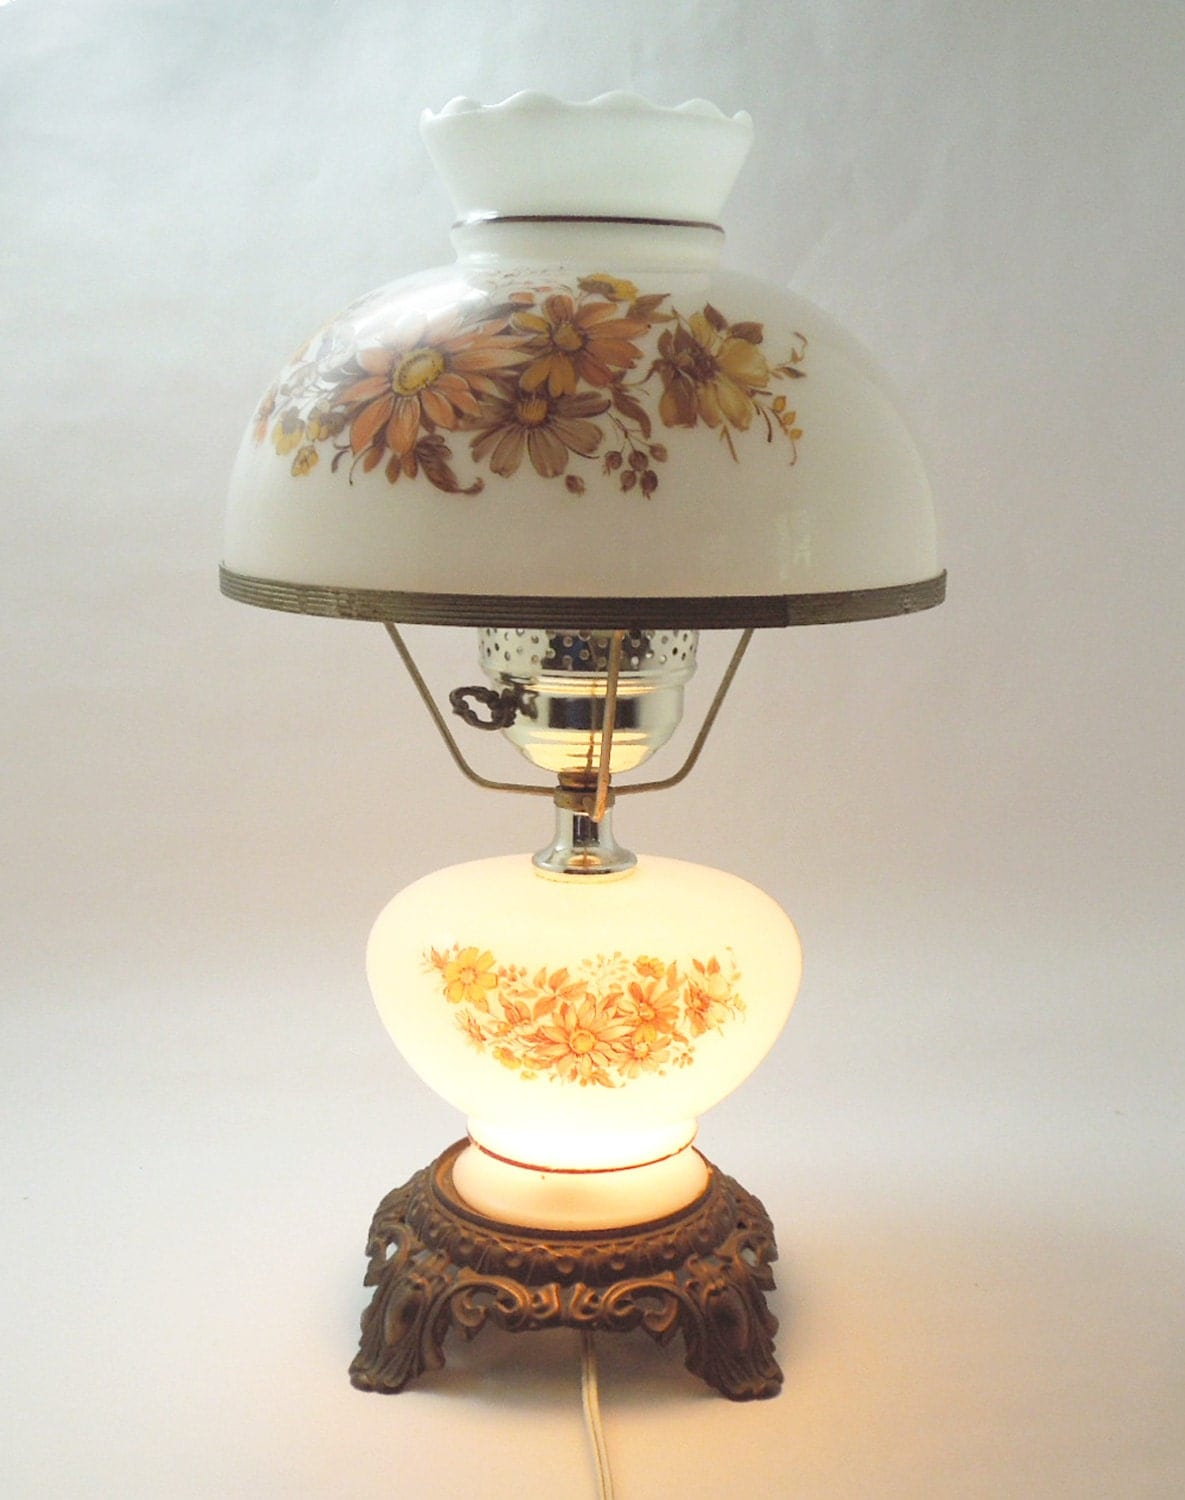 Vintage Hurricane Lamp And Night Light With Hand Painted